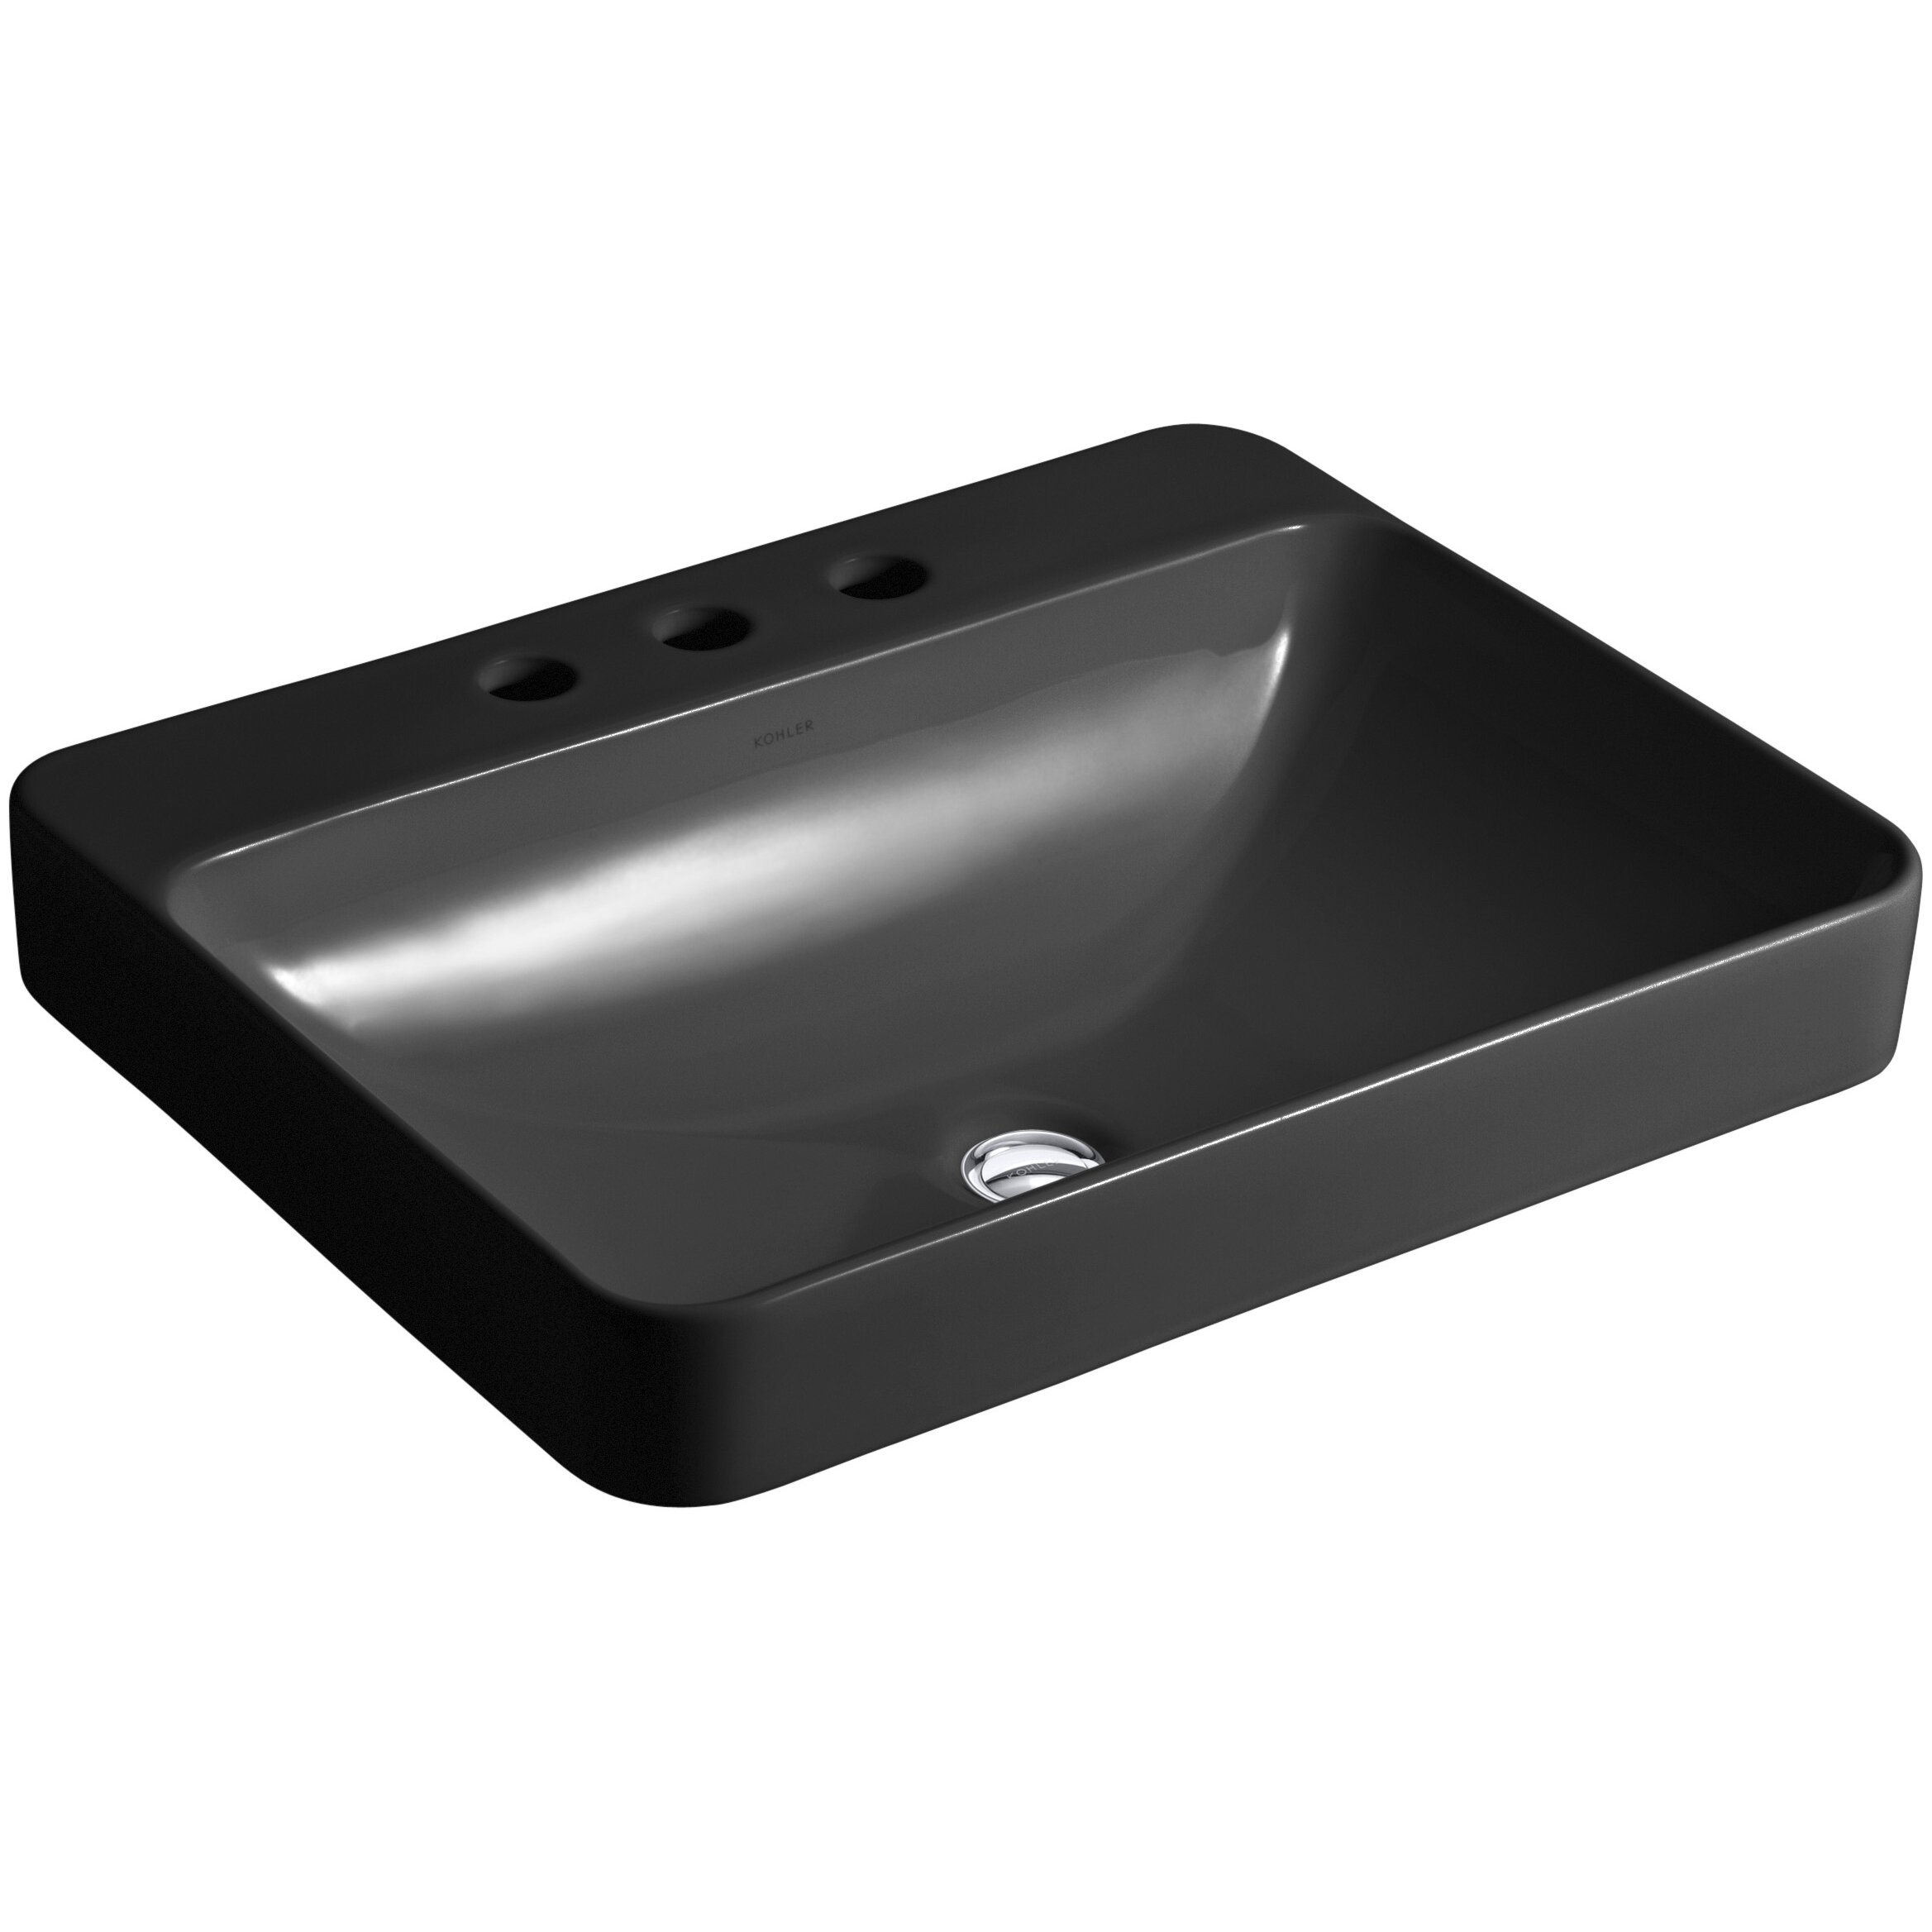 Kohler Vox Sink : Kohler Vox Rectangular Vessel Above-Counter Bathroom Sink & Reviews ...